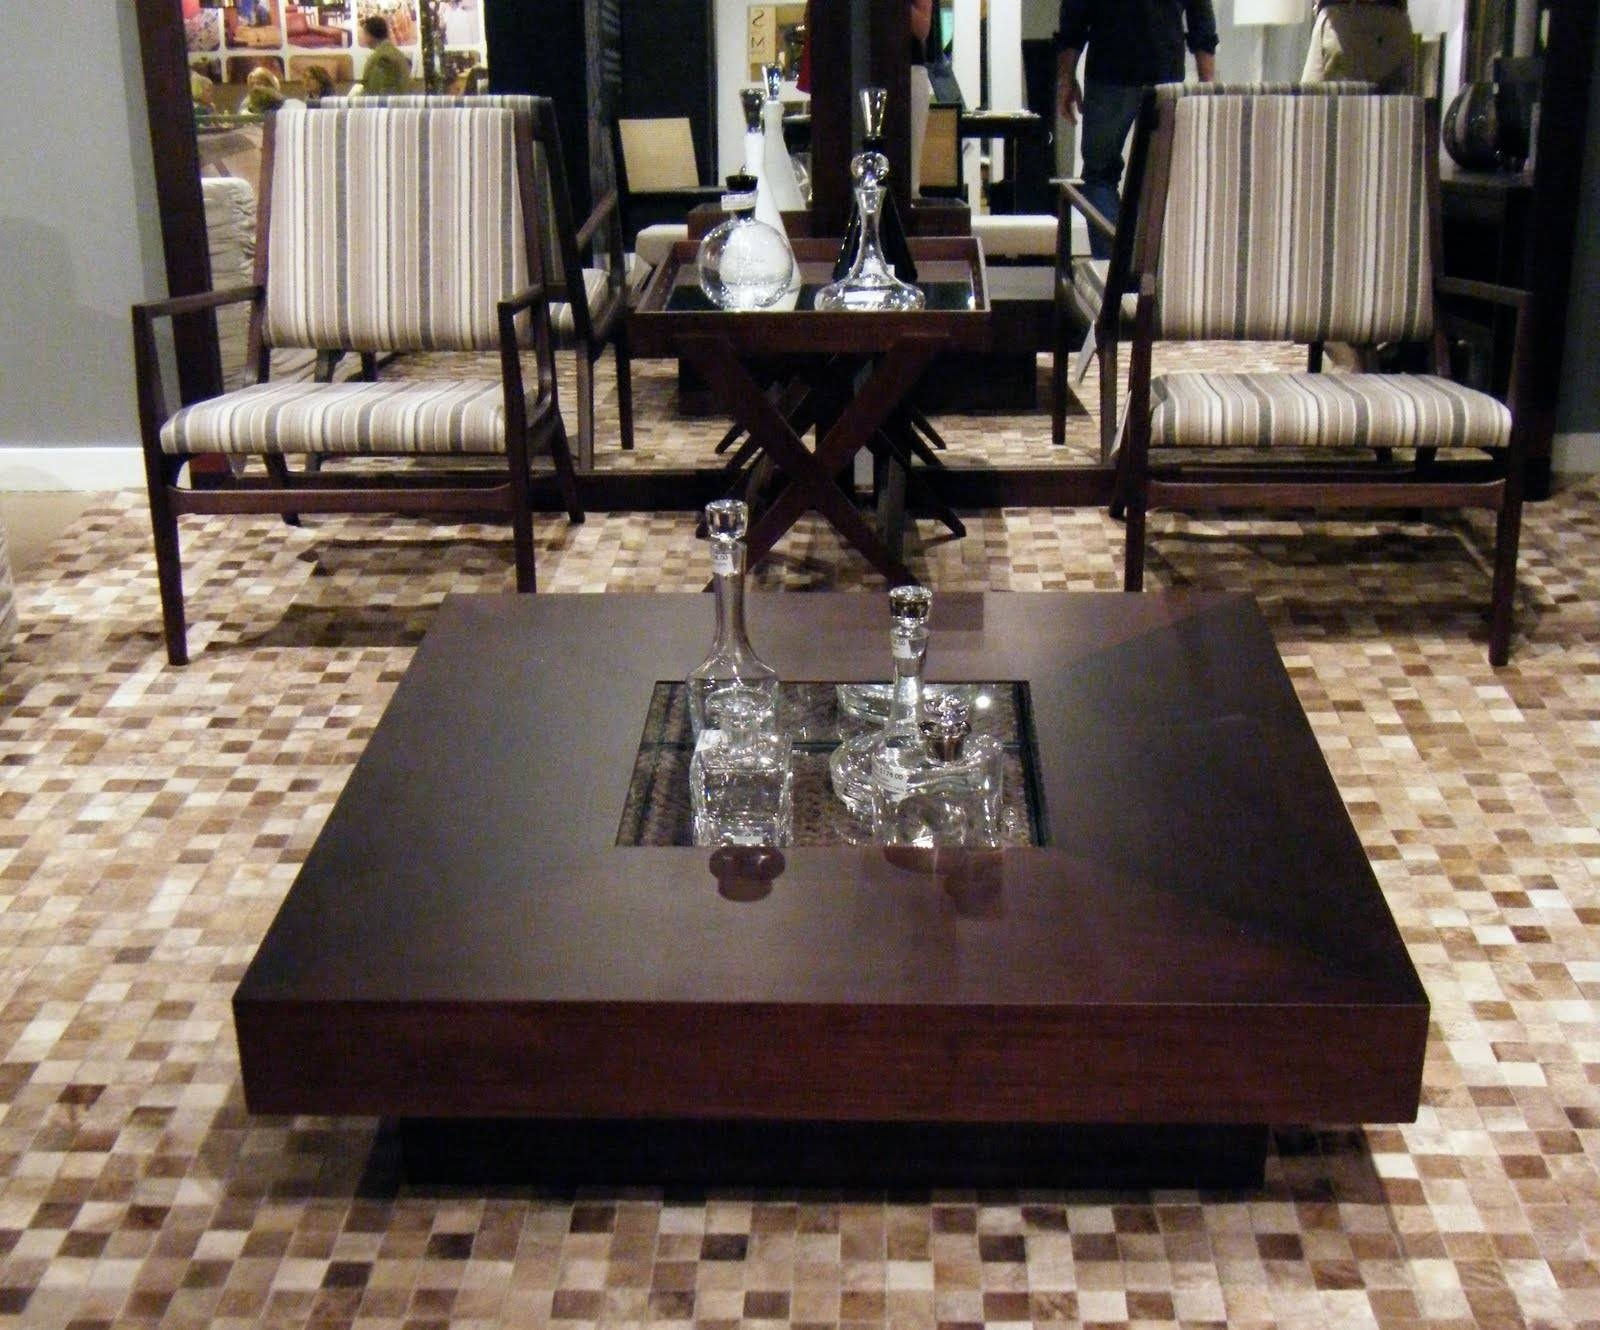 Modern Low Profile Coffee Tables | Coffee Tables Decoration inside Low Square Wooden Coffee Tables (Image 23 of 30)